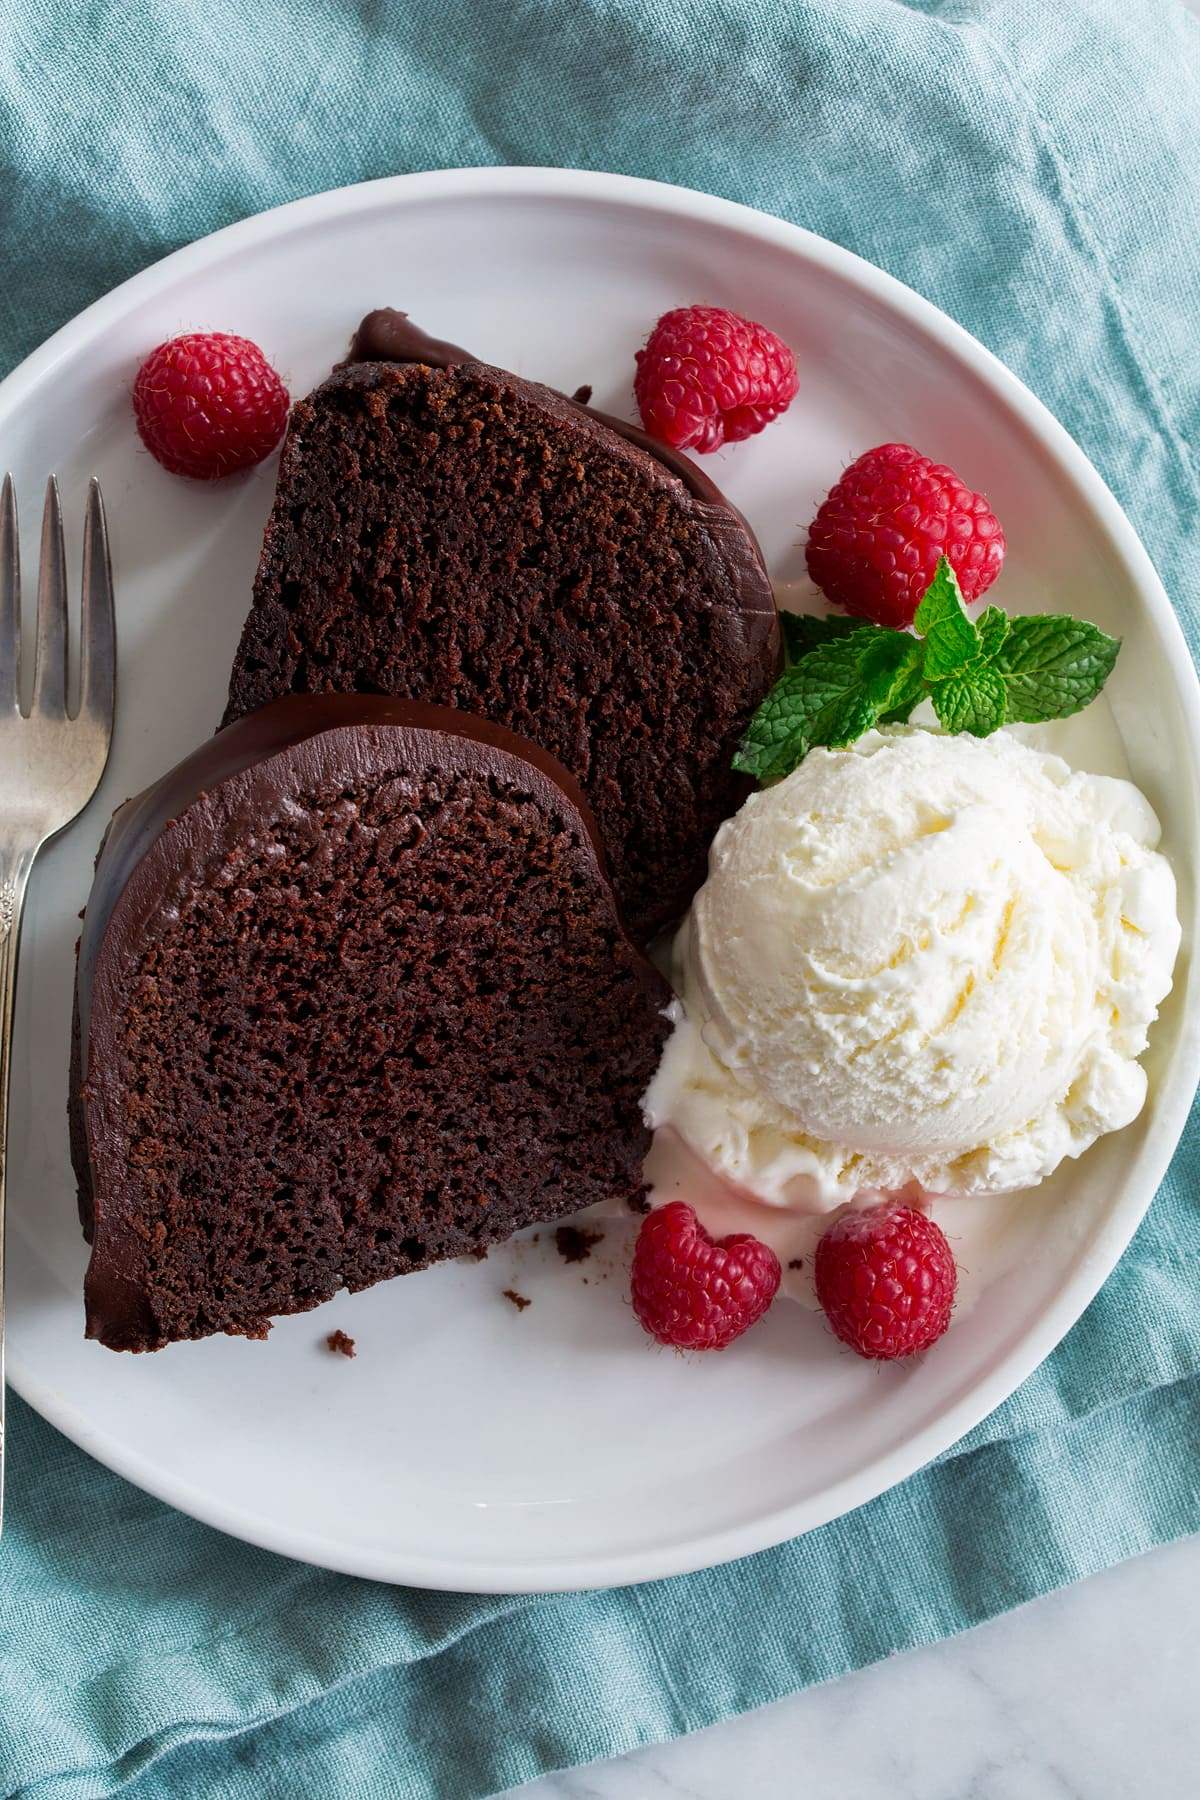 Two slices of chocolate bundt cake on a white plate with a scoop of vanilla ice cream, raspberries and mint to the side.